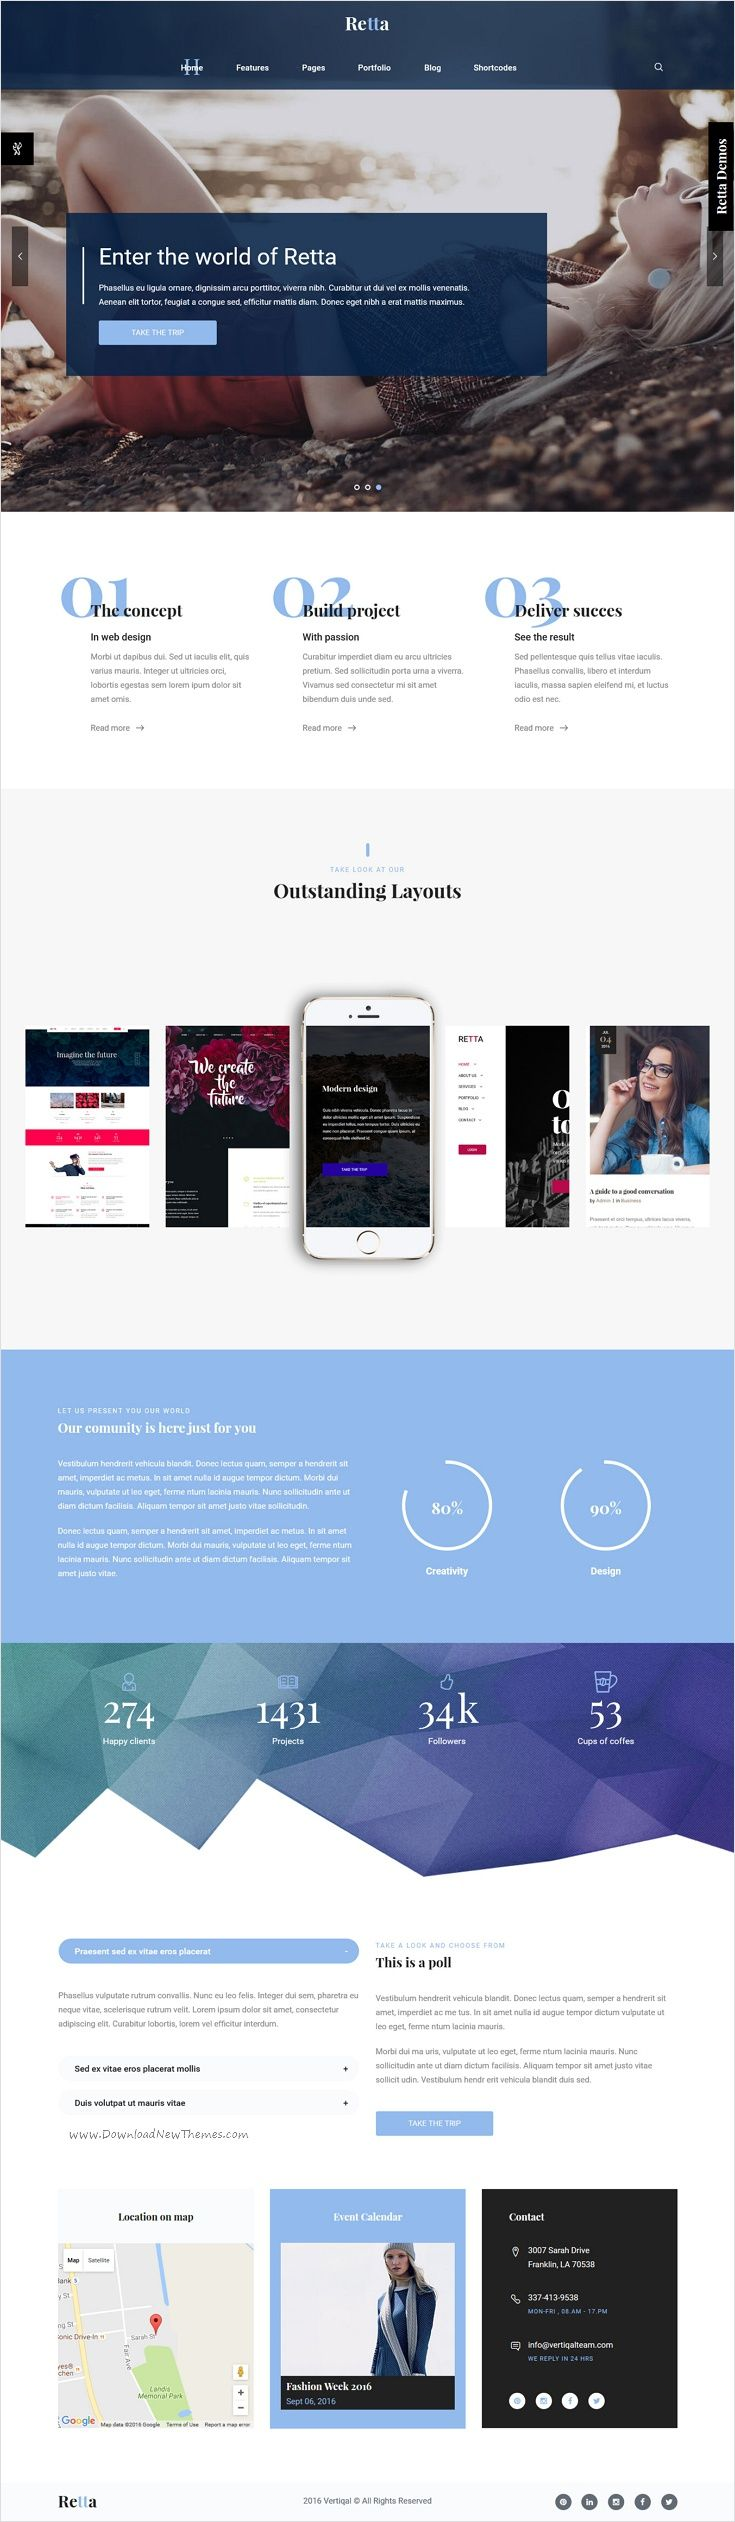 Retta is beautifully design versatile Bootstrap #HTML #templates for stunning #websites with 18+ multipurpose homepage layouts download now➩ https://themeforest.net/item/retta-multiuse-business-html5-mega-pack/17255899?ref=Datasata